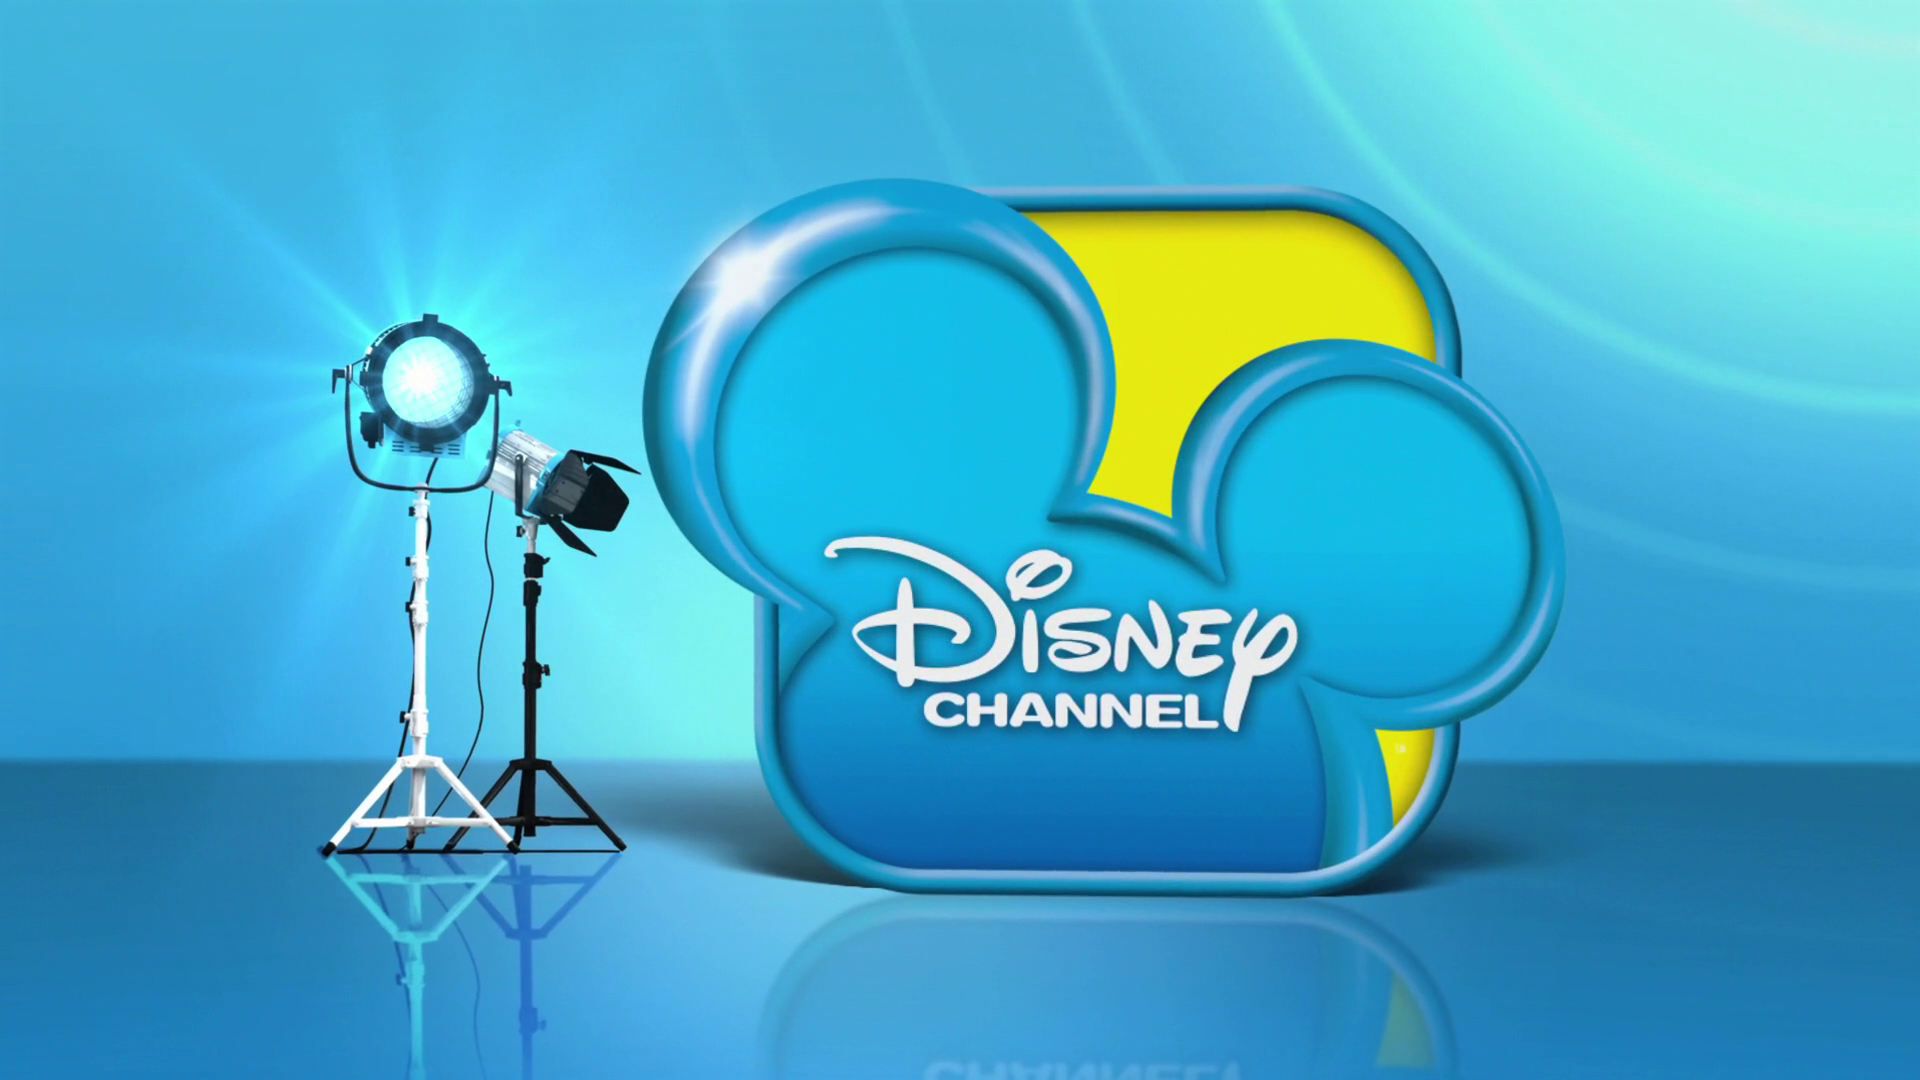 Disney Channel (Italy)